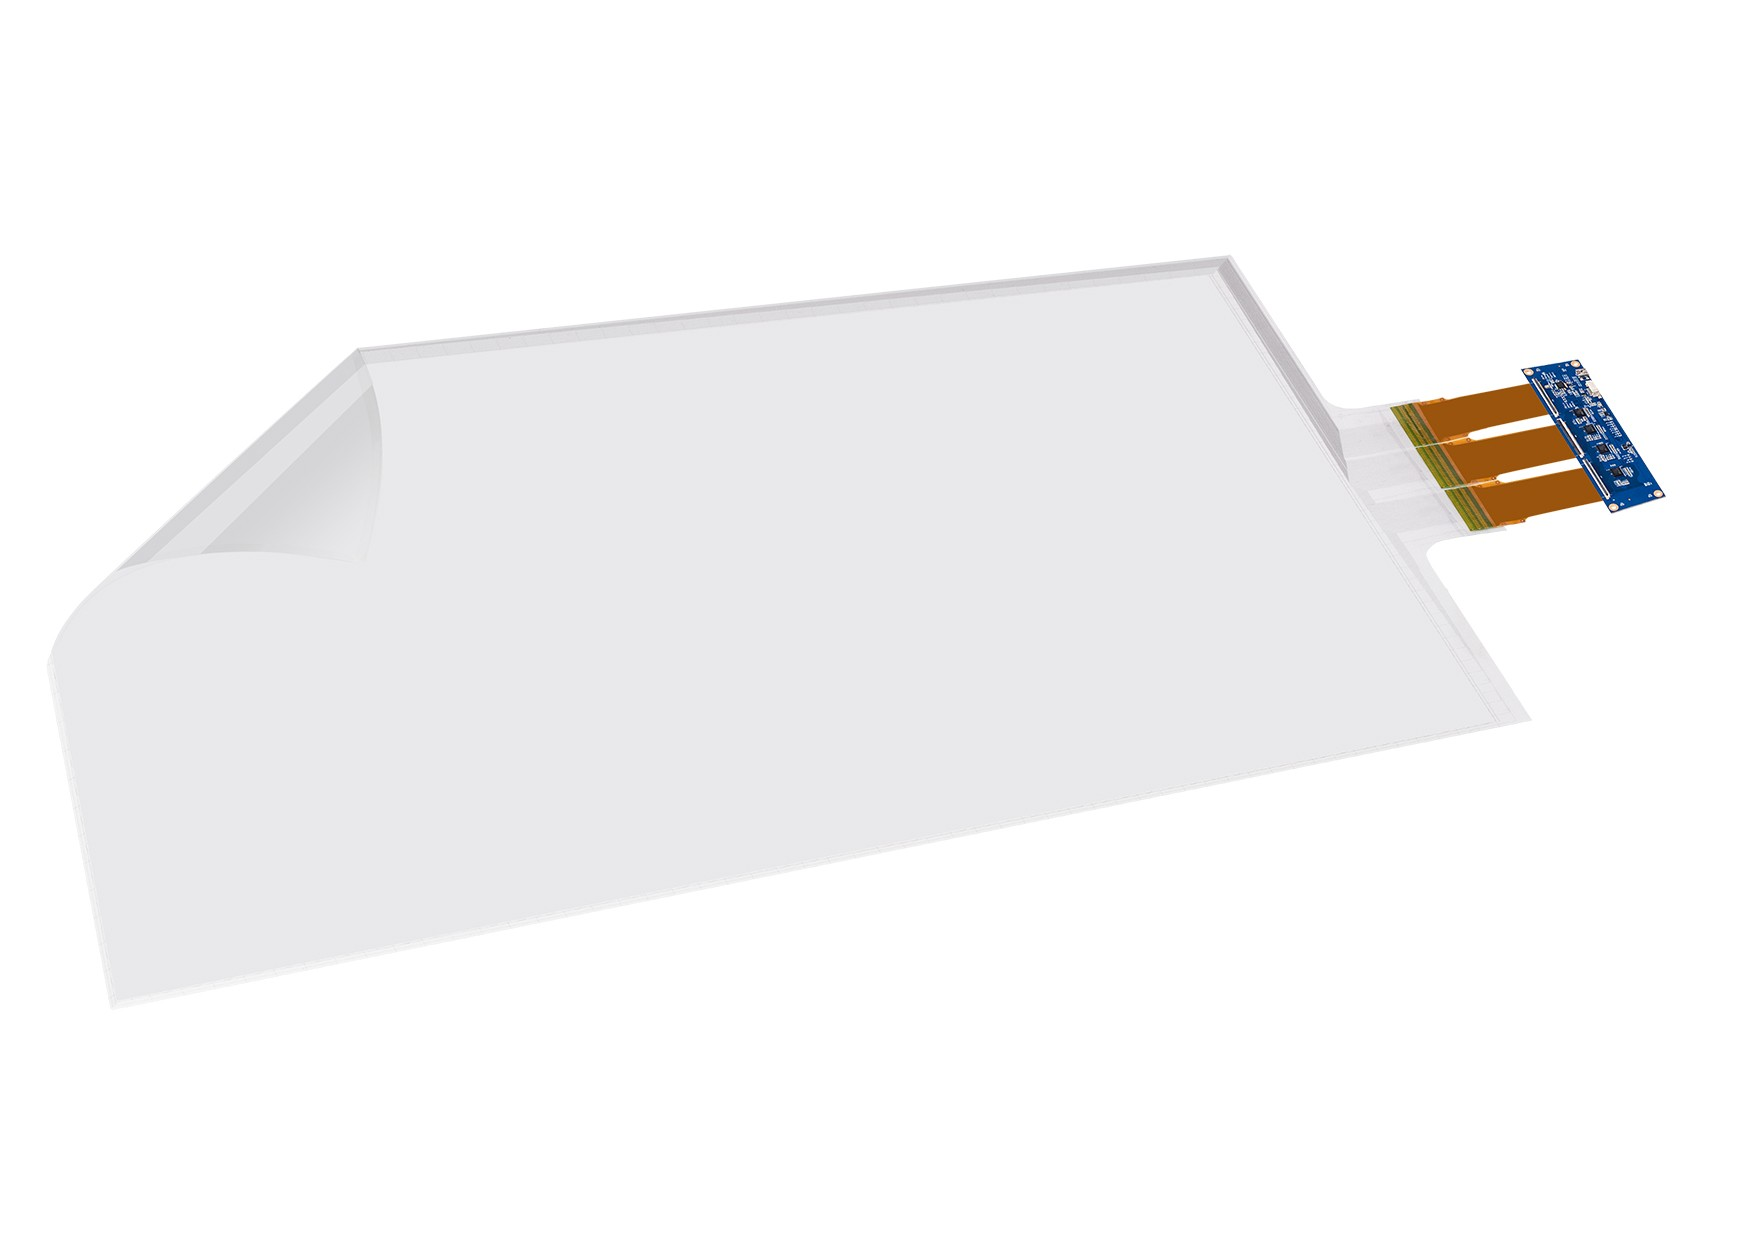 Large Touch Foil Film sized from 70'' to 84'' with 40-point